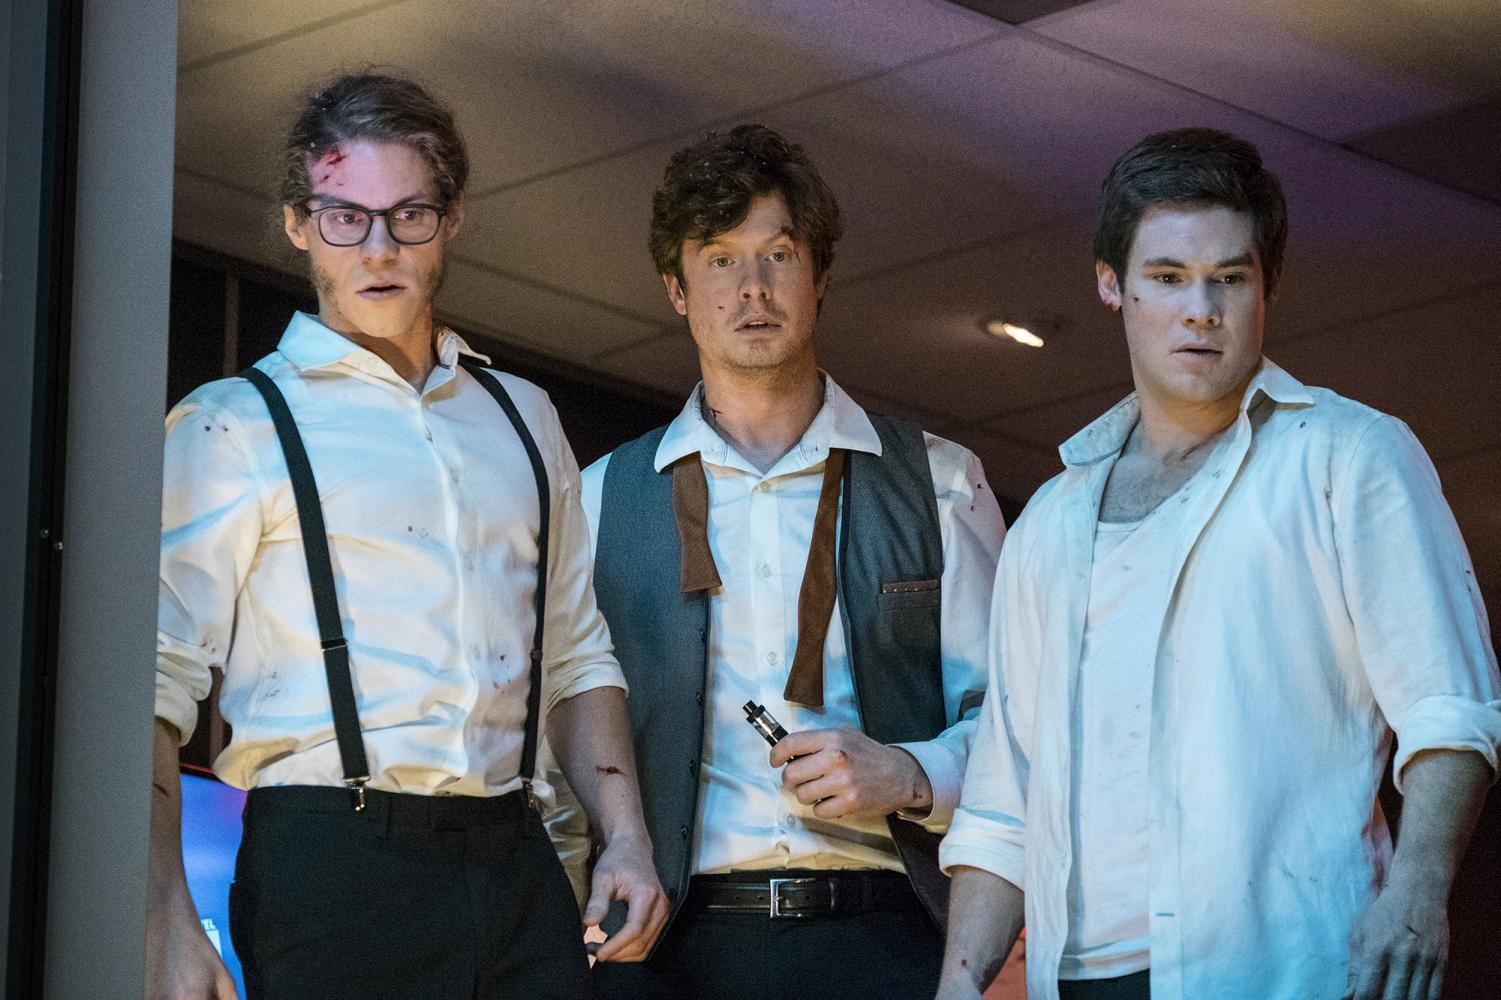 Comedians and friends Blake Anderson, Anders Holm and Adam Devine star in the new Netflix action-comedy